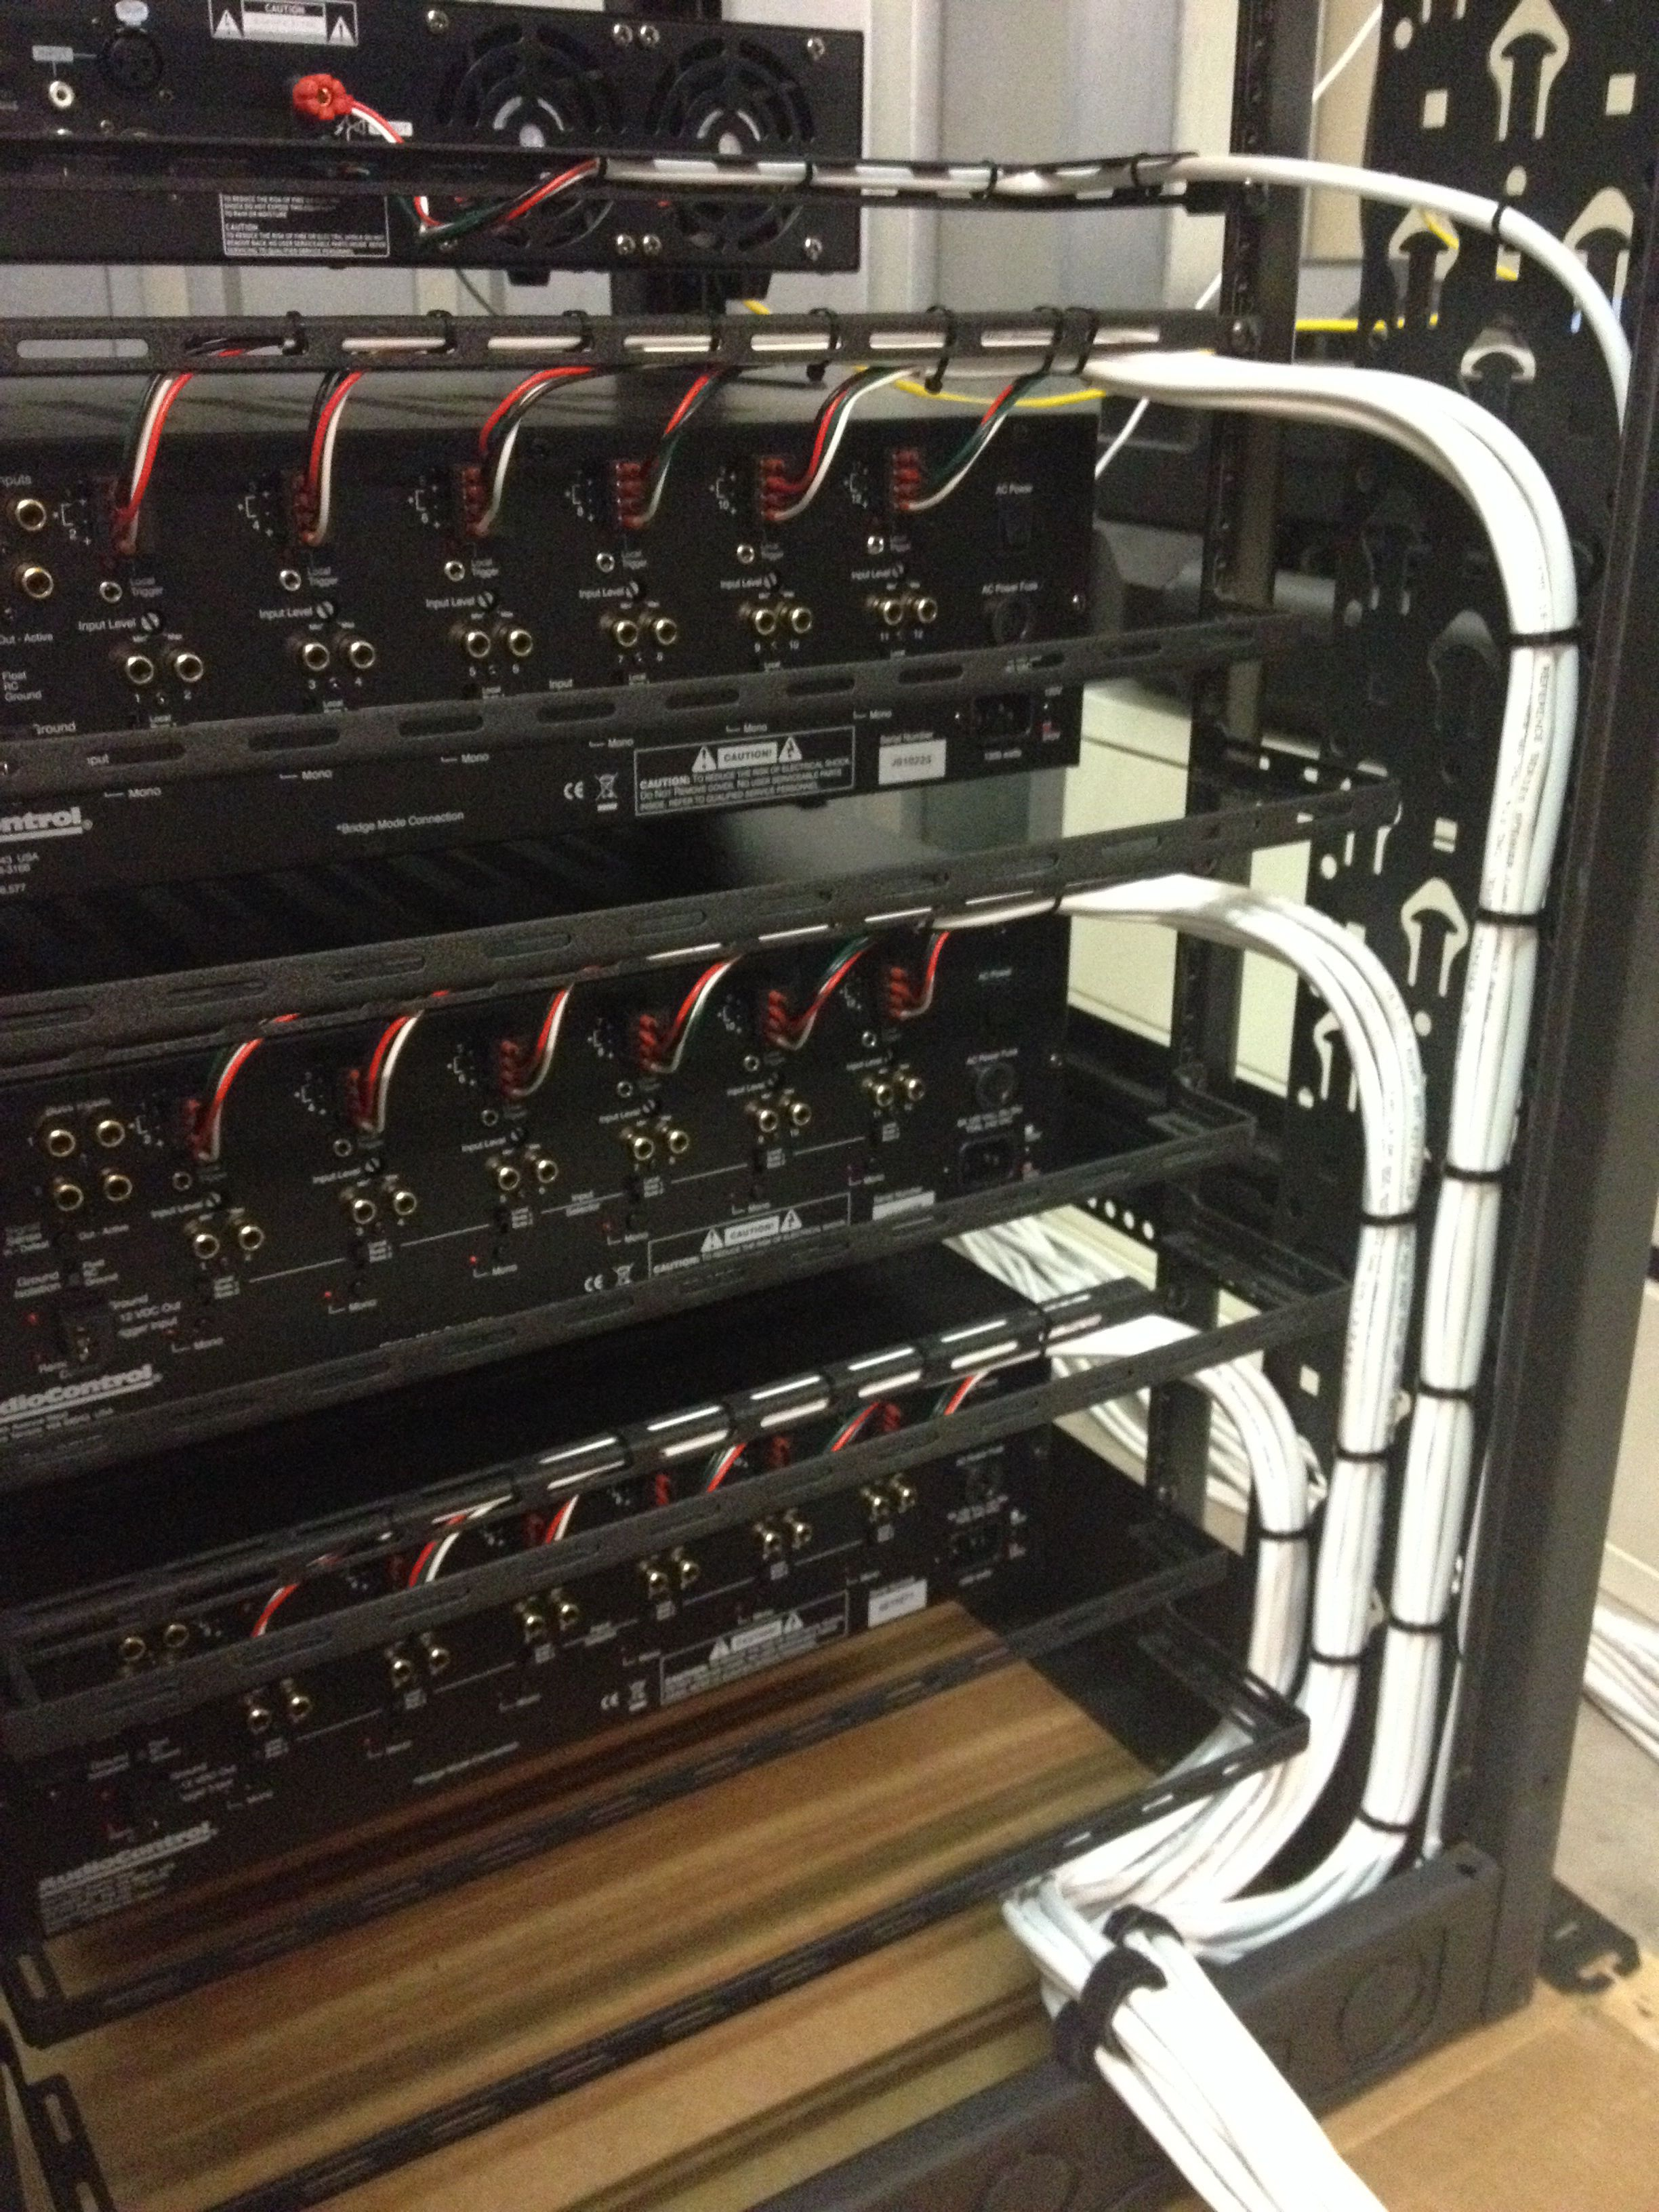 small resolution of rear view of equipment rack housing audio distribution system showing speaker cabling installation